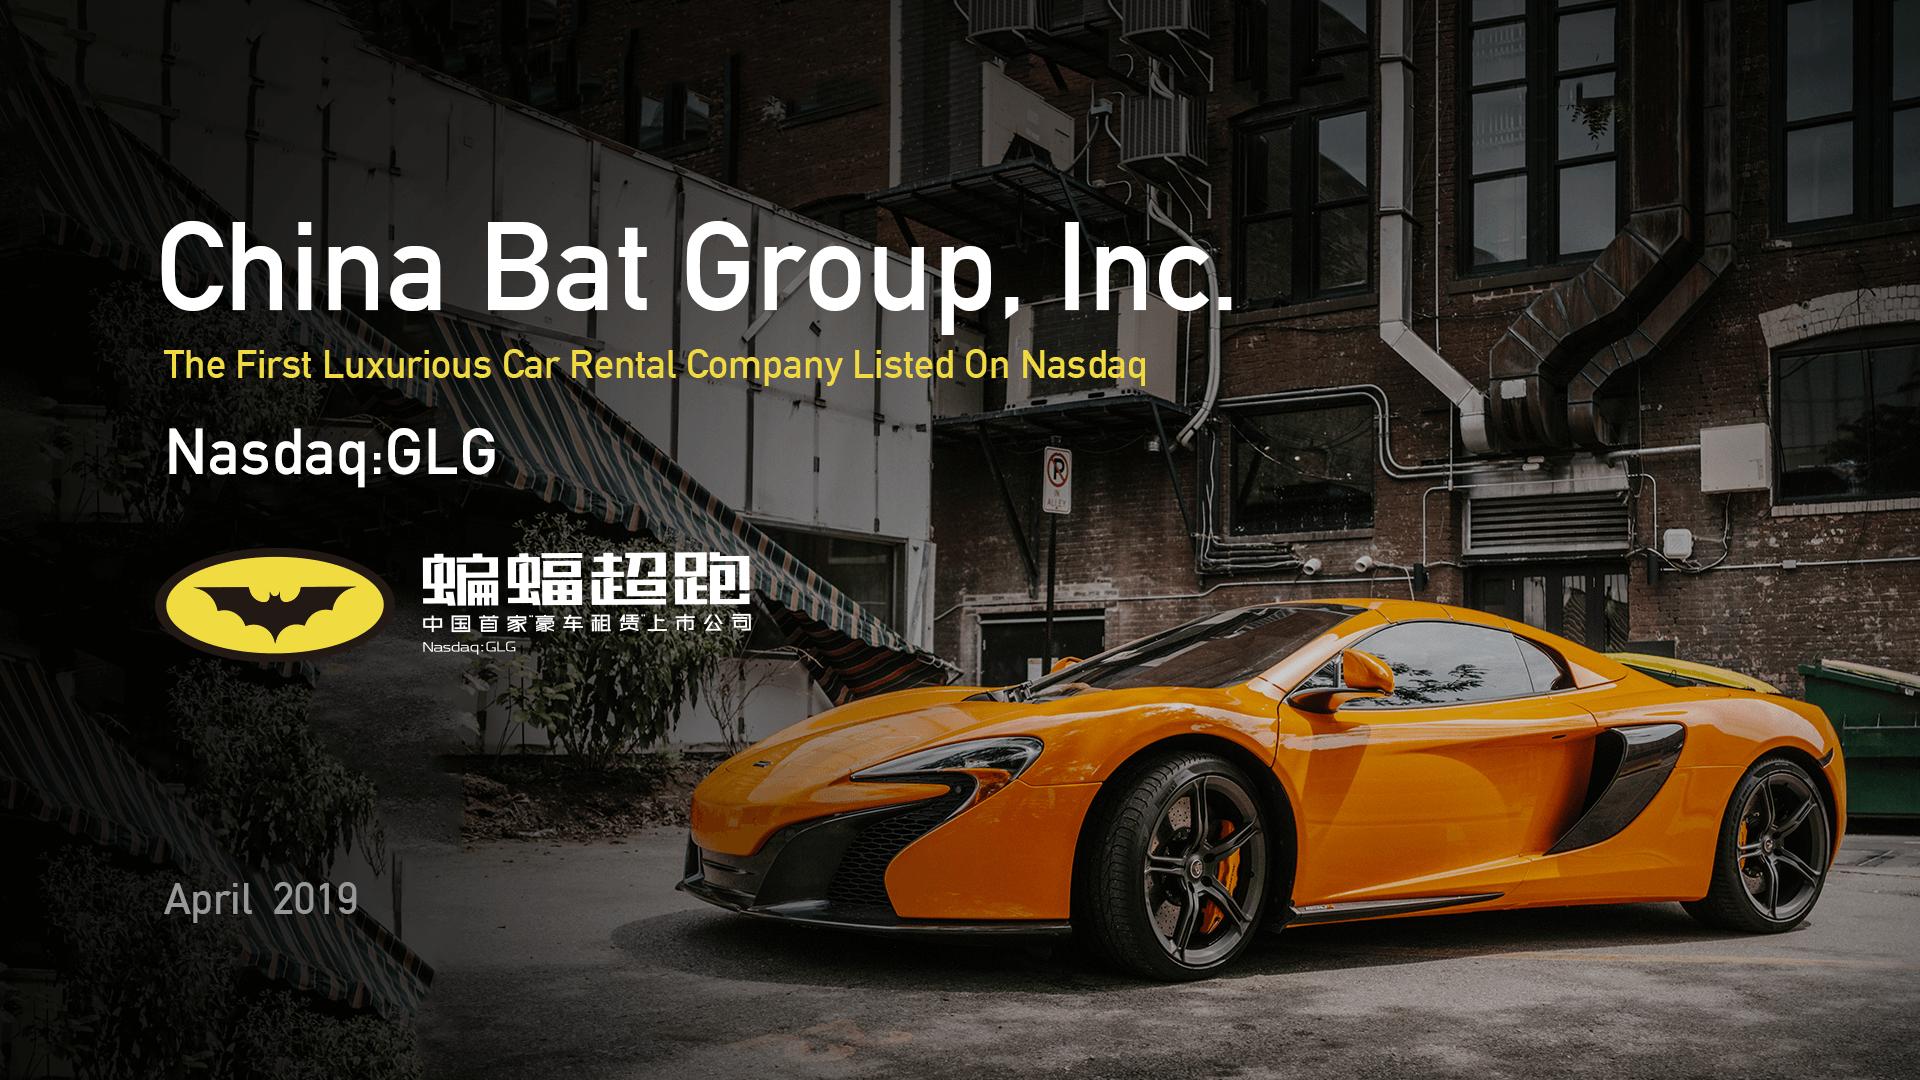 China Bat Announces $3.7 Million Stock Sale to Investors at $2.20 Per Share